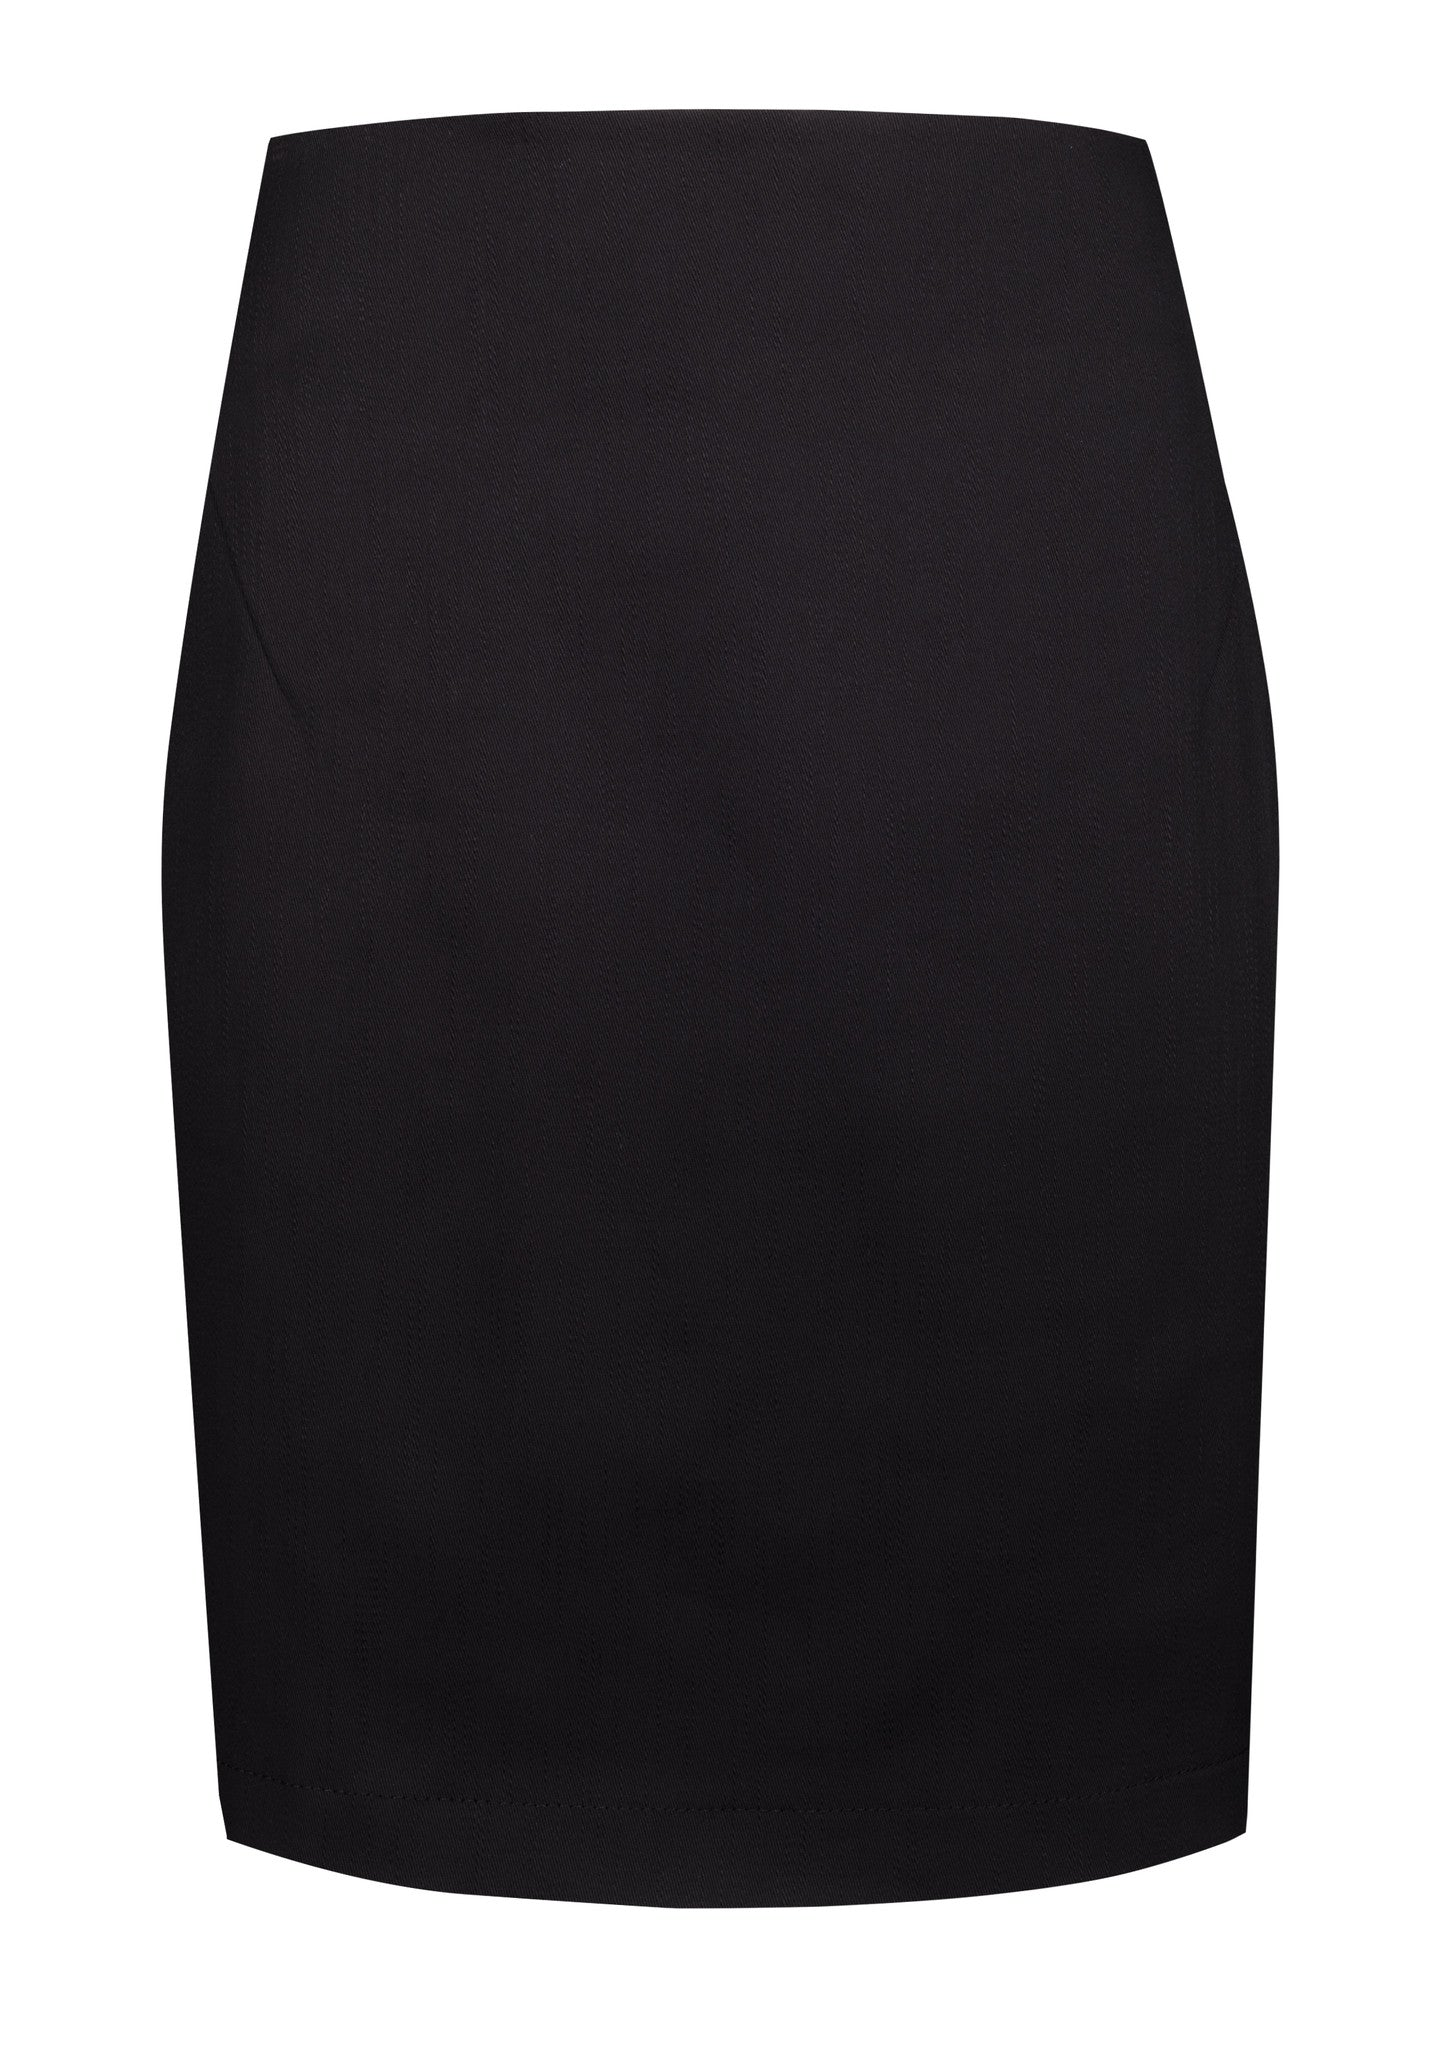 Pencil skirt in stretch cotton, Skirt, FG atelier